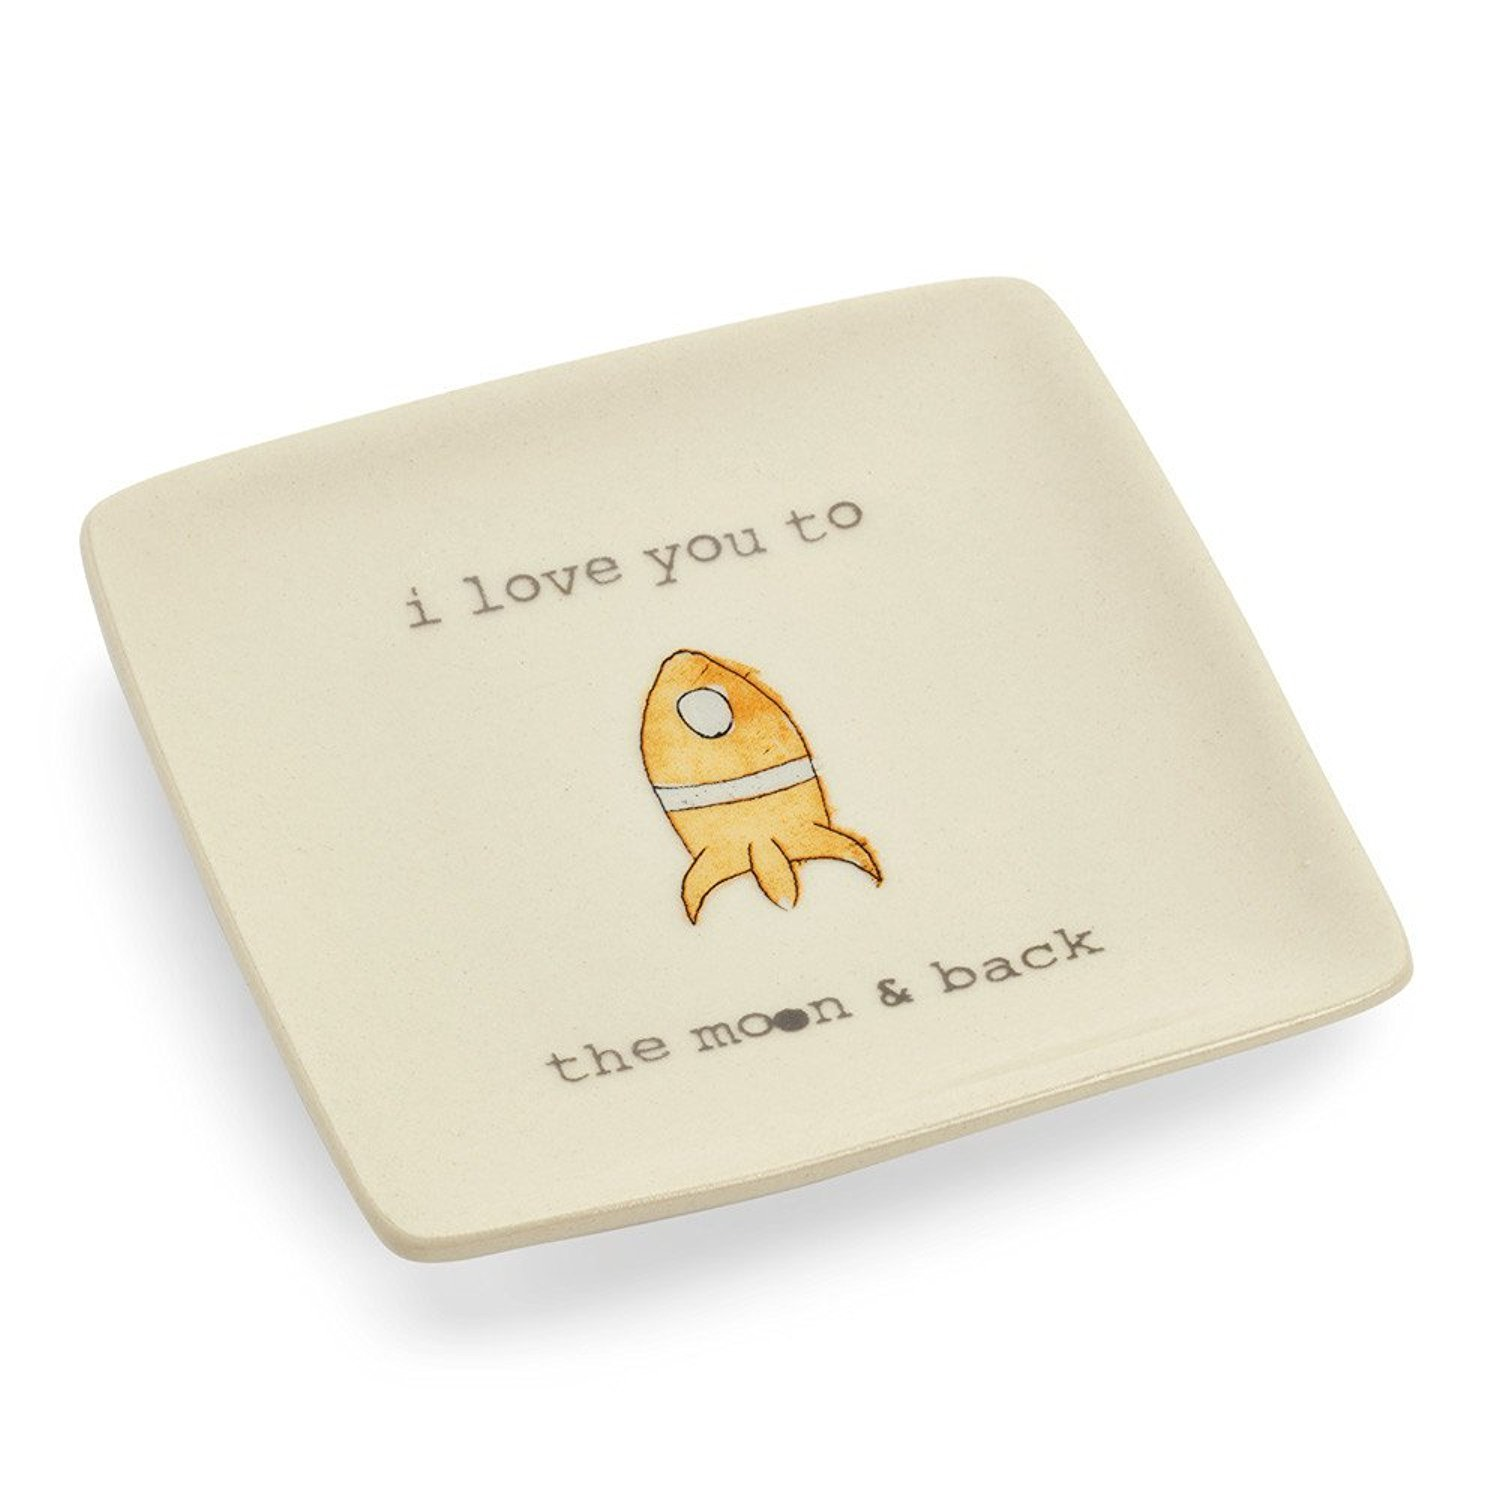 I Love You to The Moon and Back Ring Dish General gn16accco113